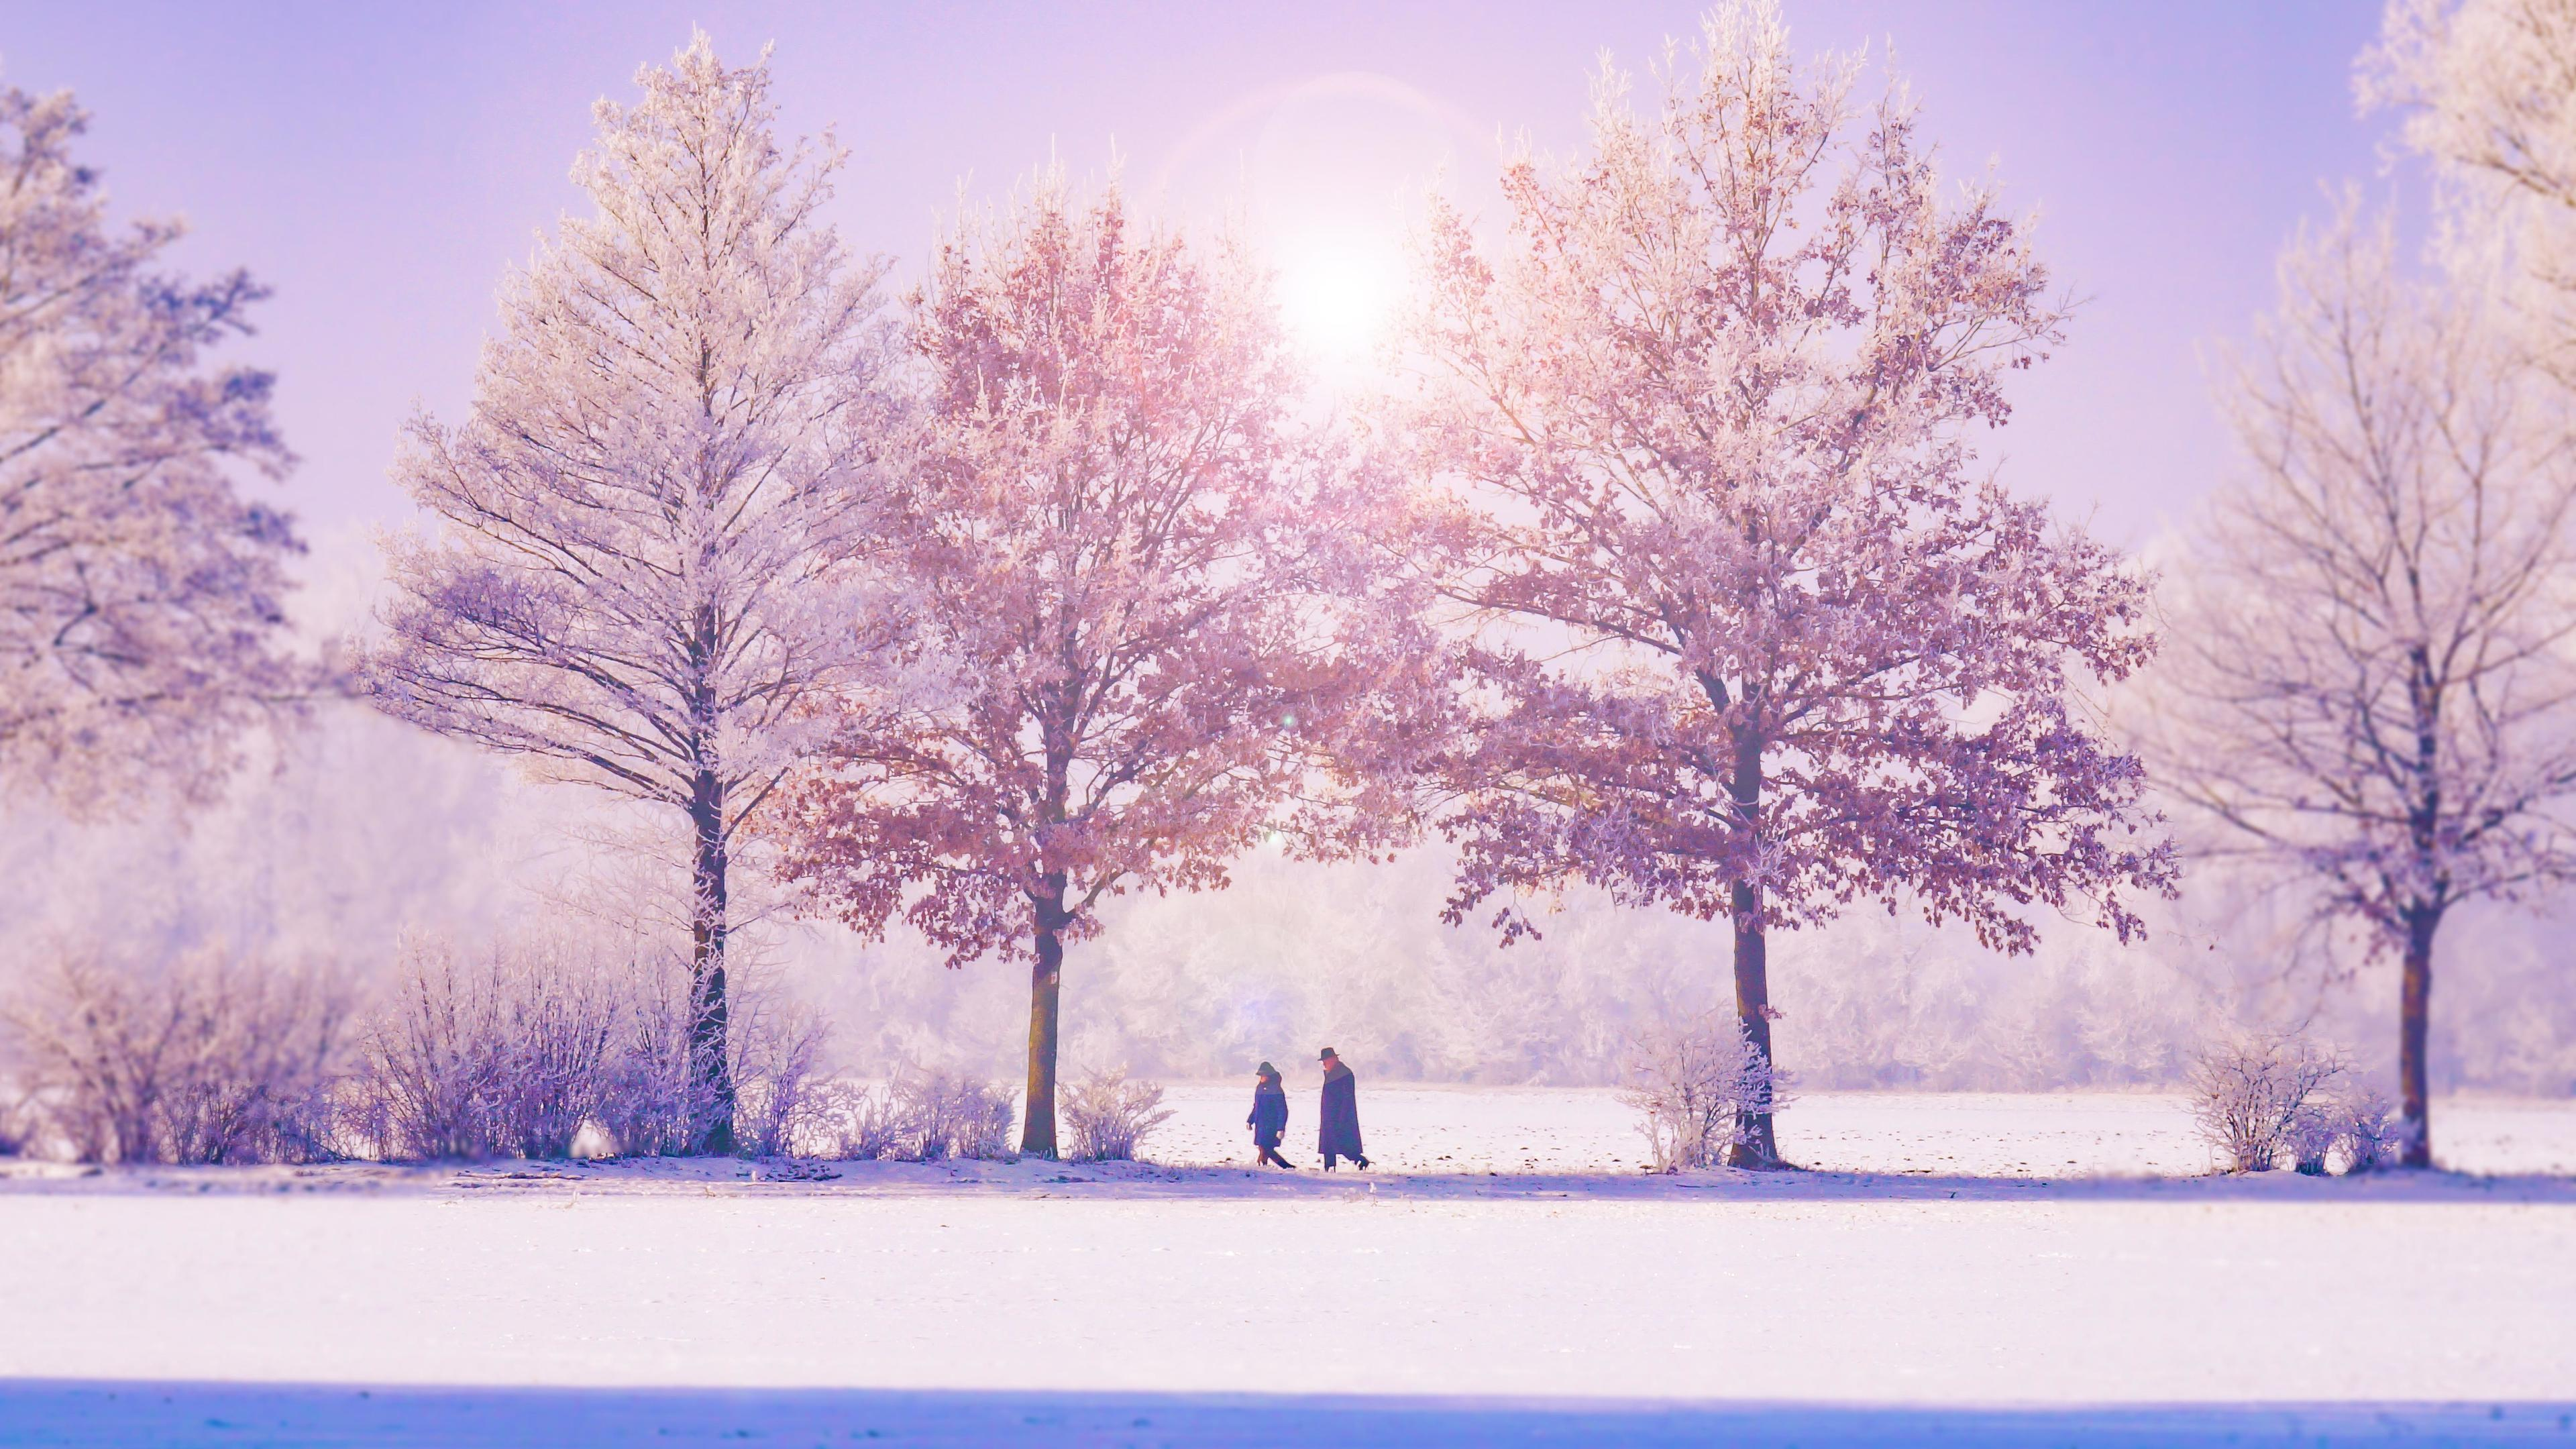 winter trees 4k 1540133502 - Winter Trees 4k - winter wallpapers, trees wallpapers, nature wallpapers, hd-wallpapers, 5k wallpapers, 4k-wallpapers